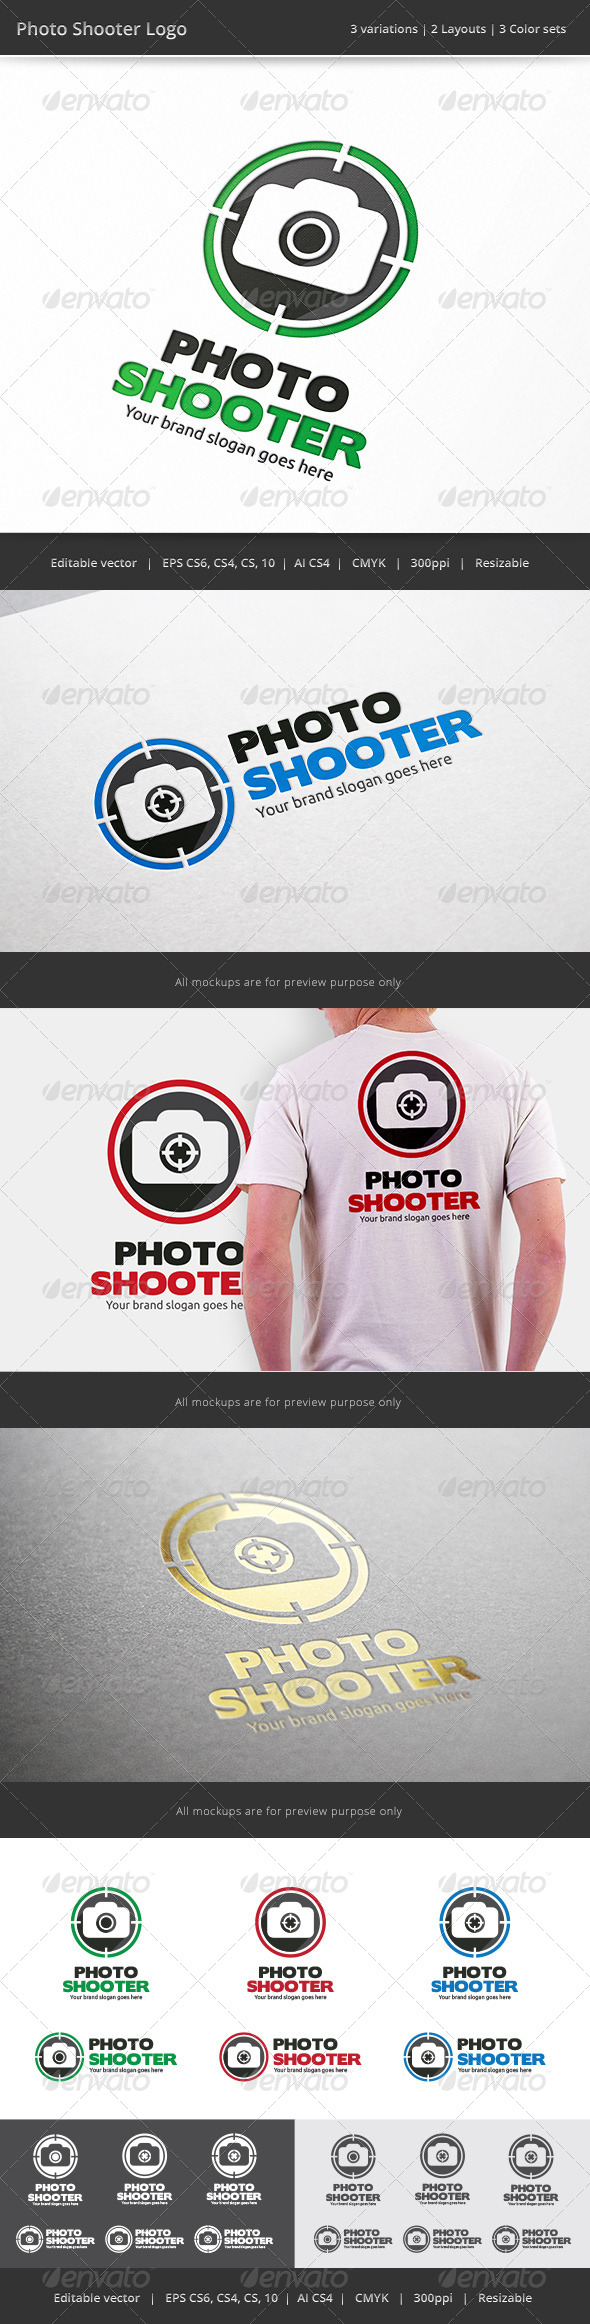 GraphicRiver Photo Shooter Logo 7488256